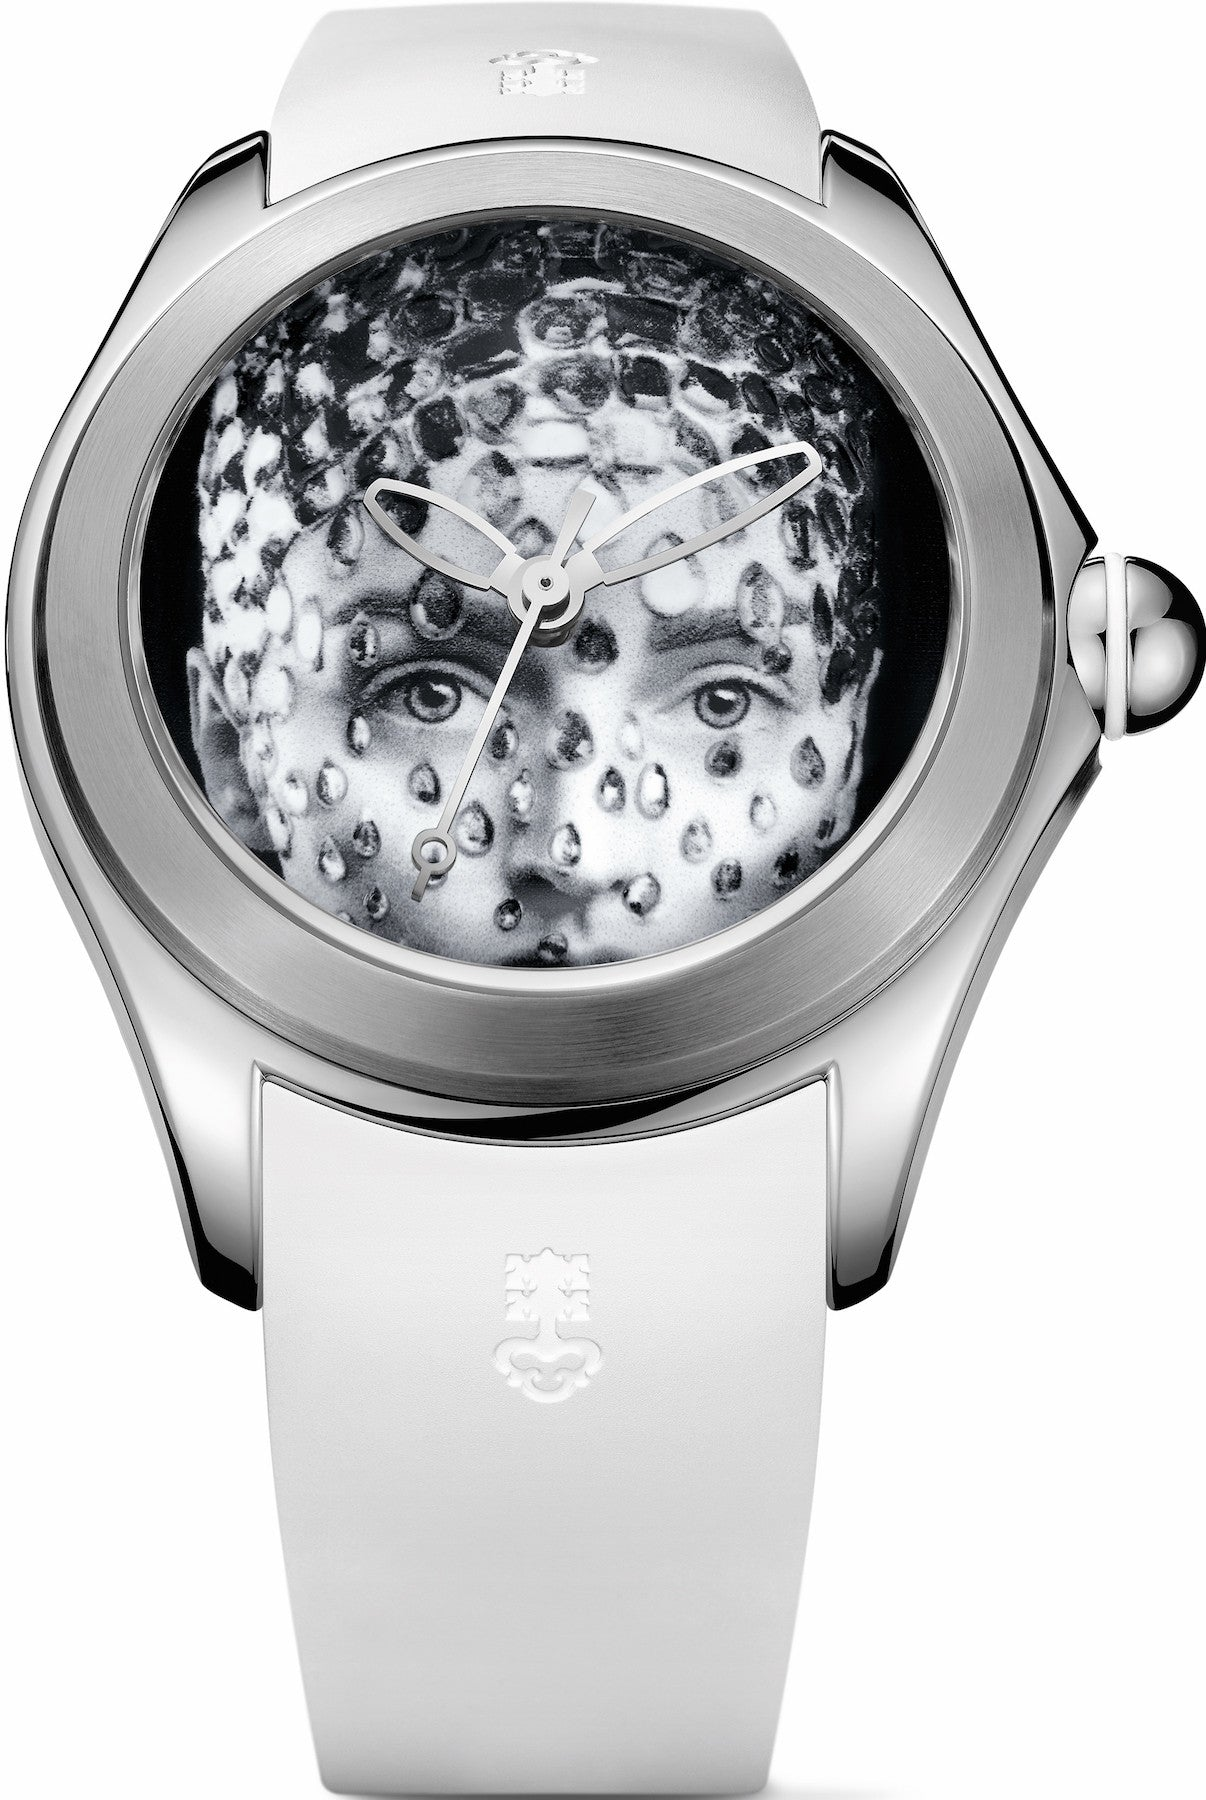 Bargain Corum Watch Bubble 42 Juliette Jourdain Limited Edition Stockists